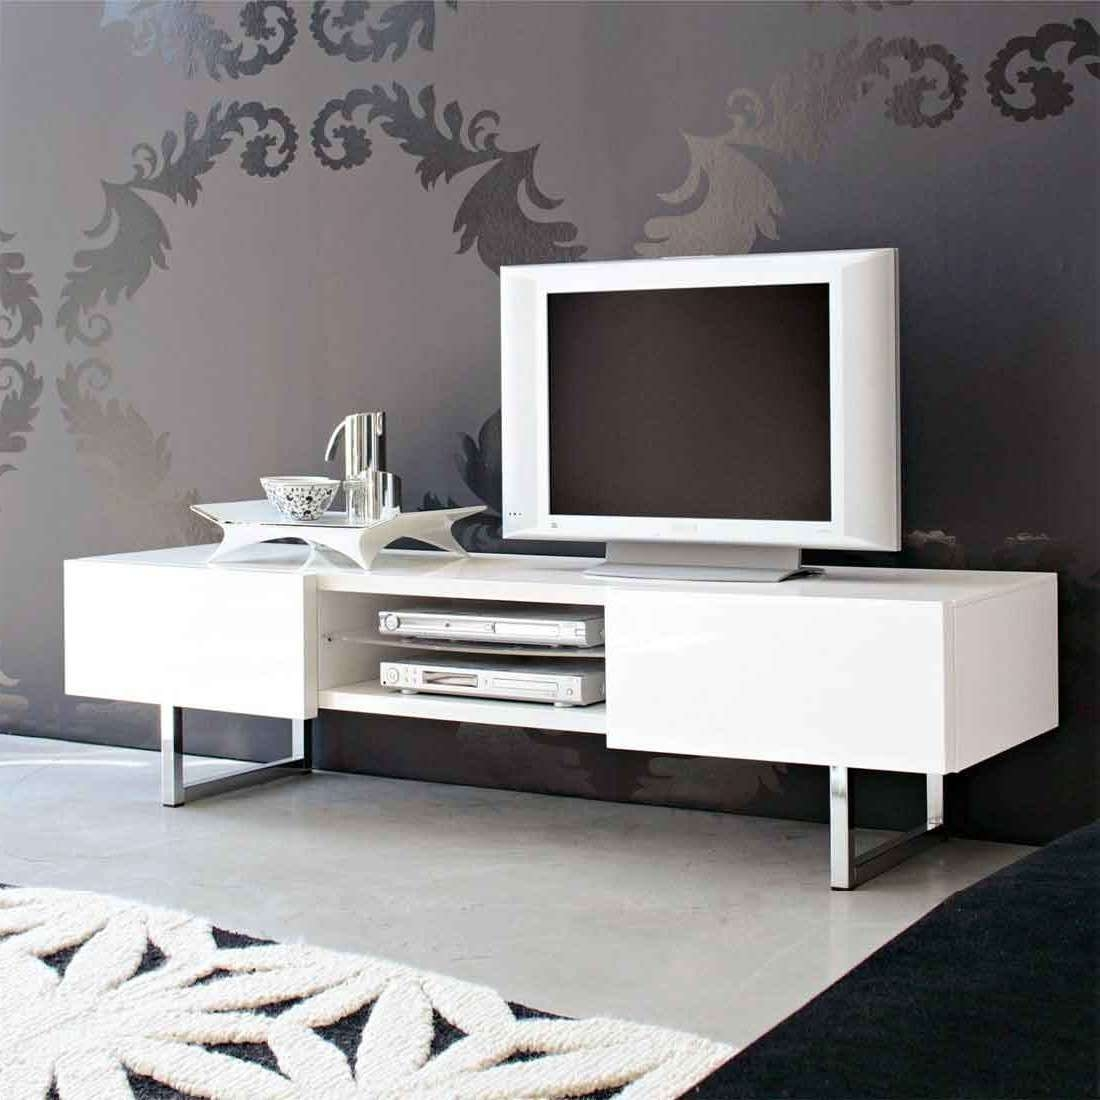 White Tv Stand Ideas Home Design Dac2A9Cor Pinterest Furnitures With Regard To Large White Tv Stands (View 15 of 15)